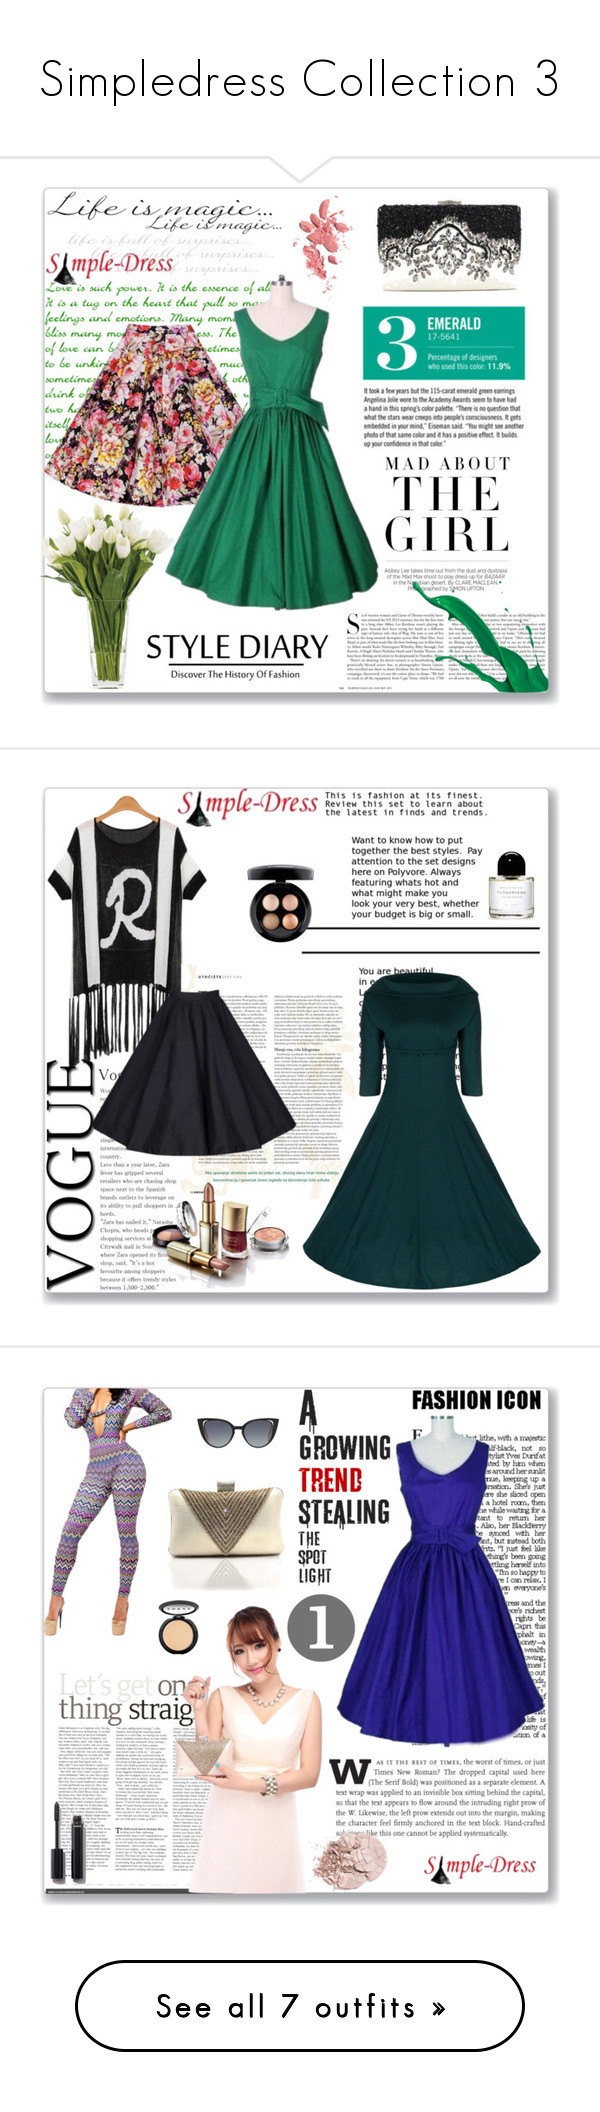 """""""Simpledress Collection 3"""" by meldin ❤ liked on Polyvore featuring simpledress, Kershaw, Garance Doré, NDI, Chanel, modern, vintage, MAC Cosmetics, LORAC and Fendi"""